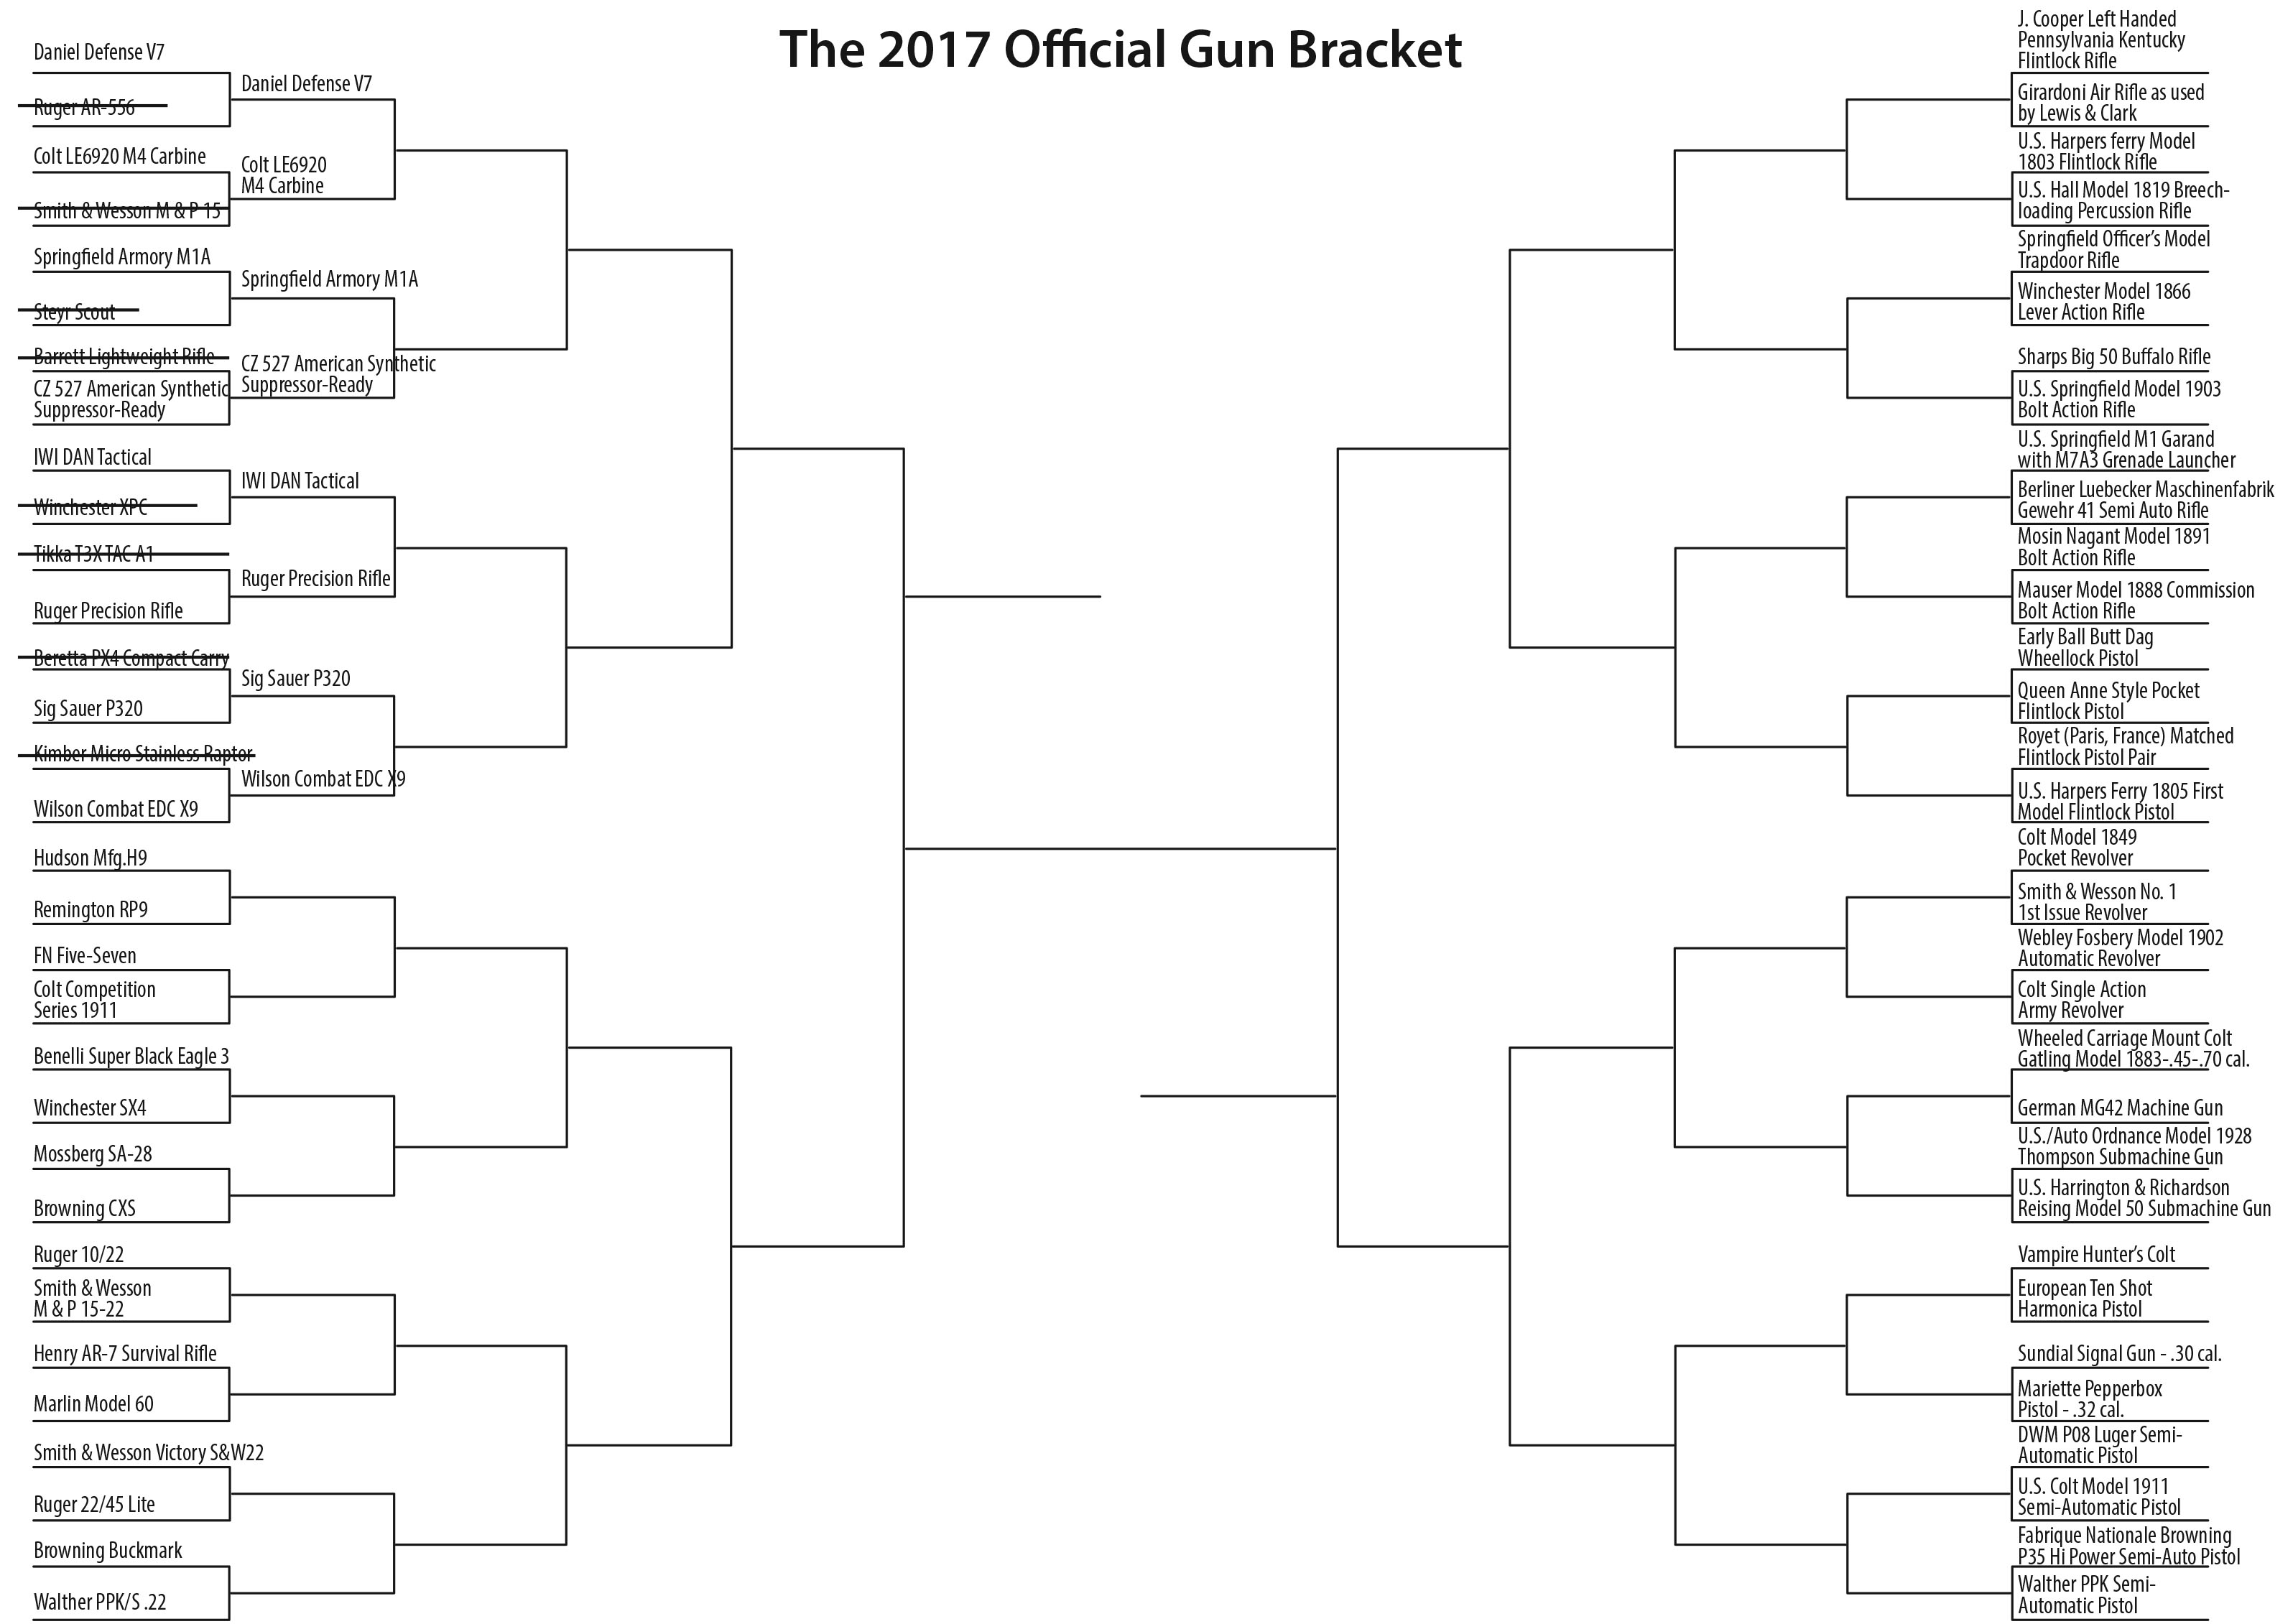 2017 NRA Gun Bracket March Madness